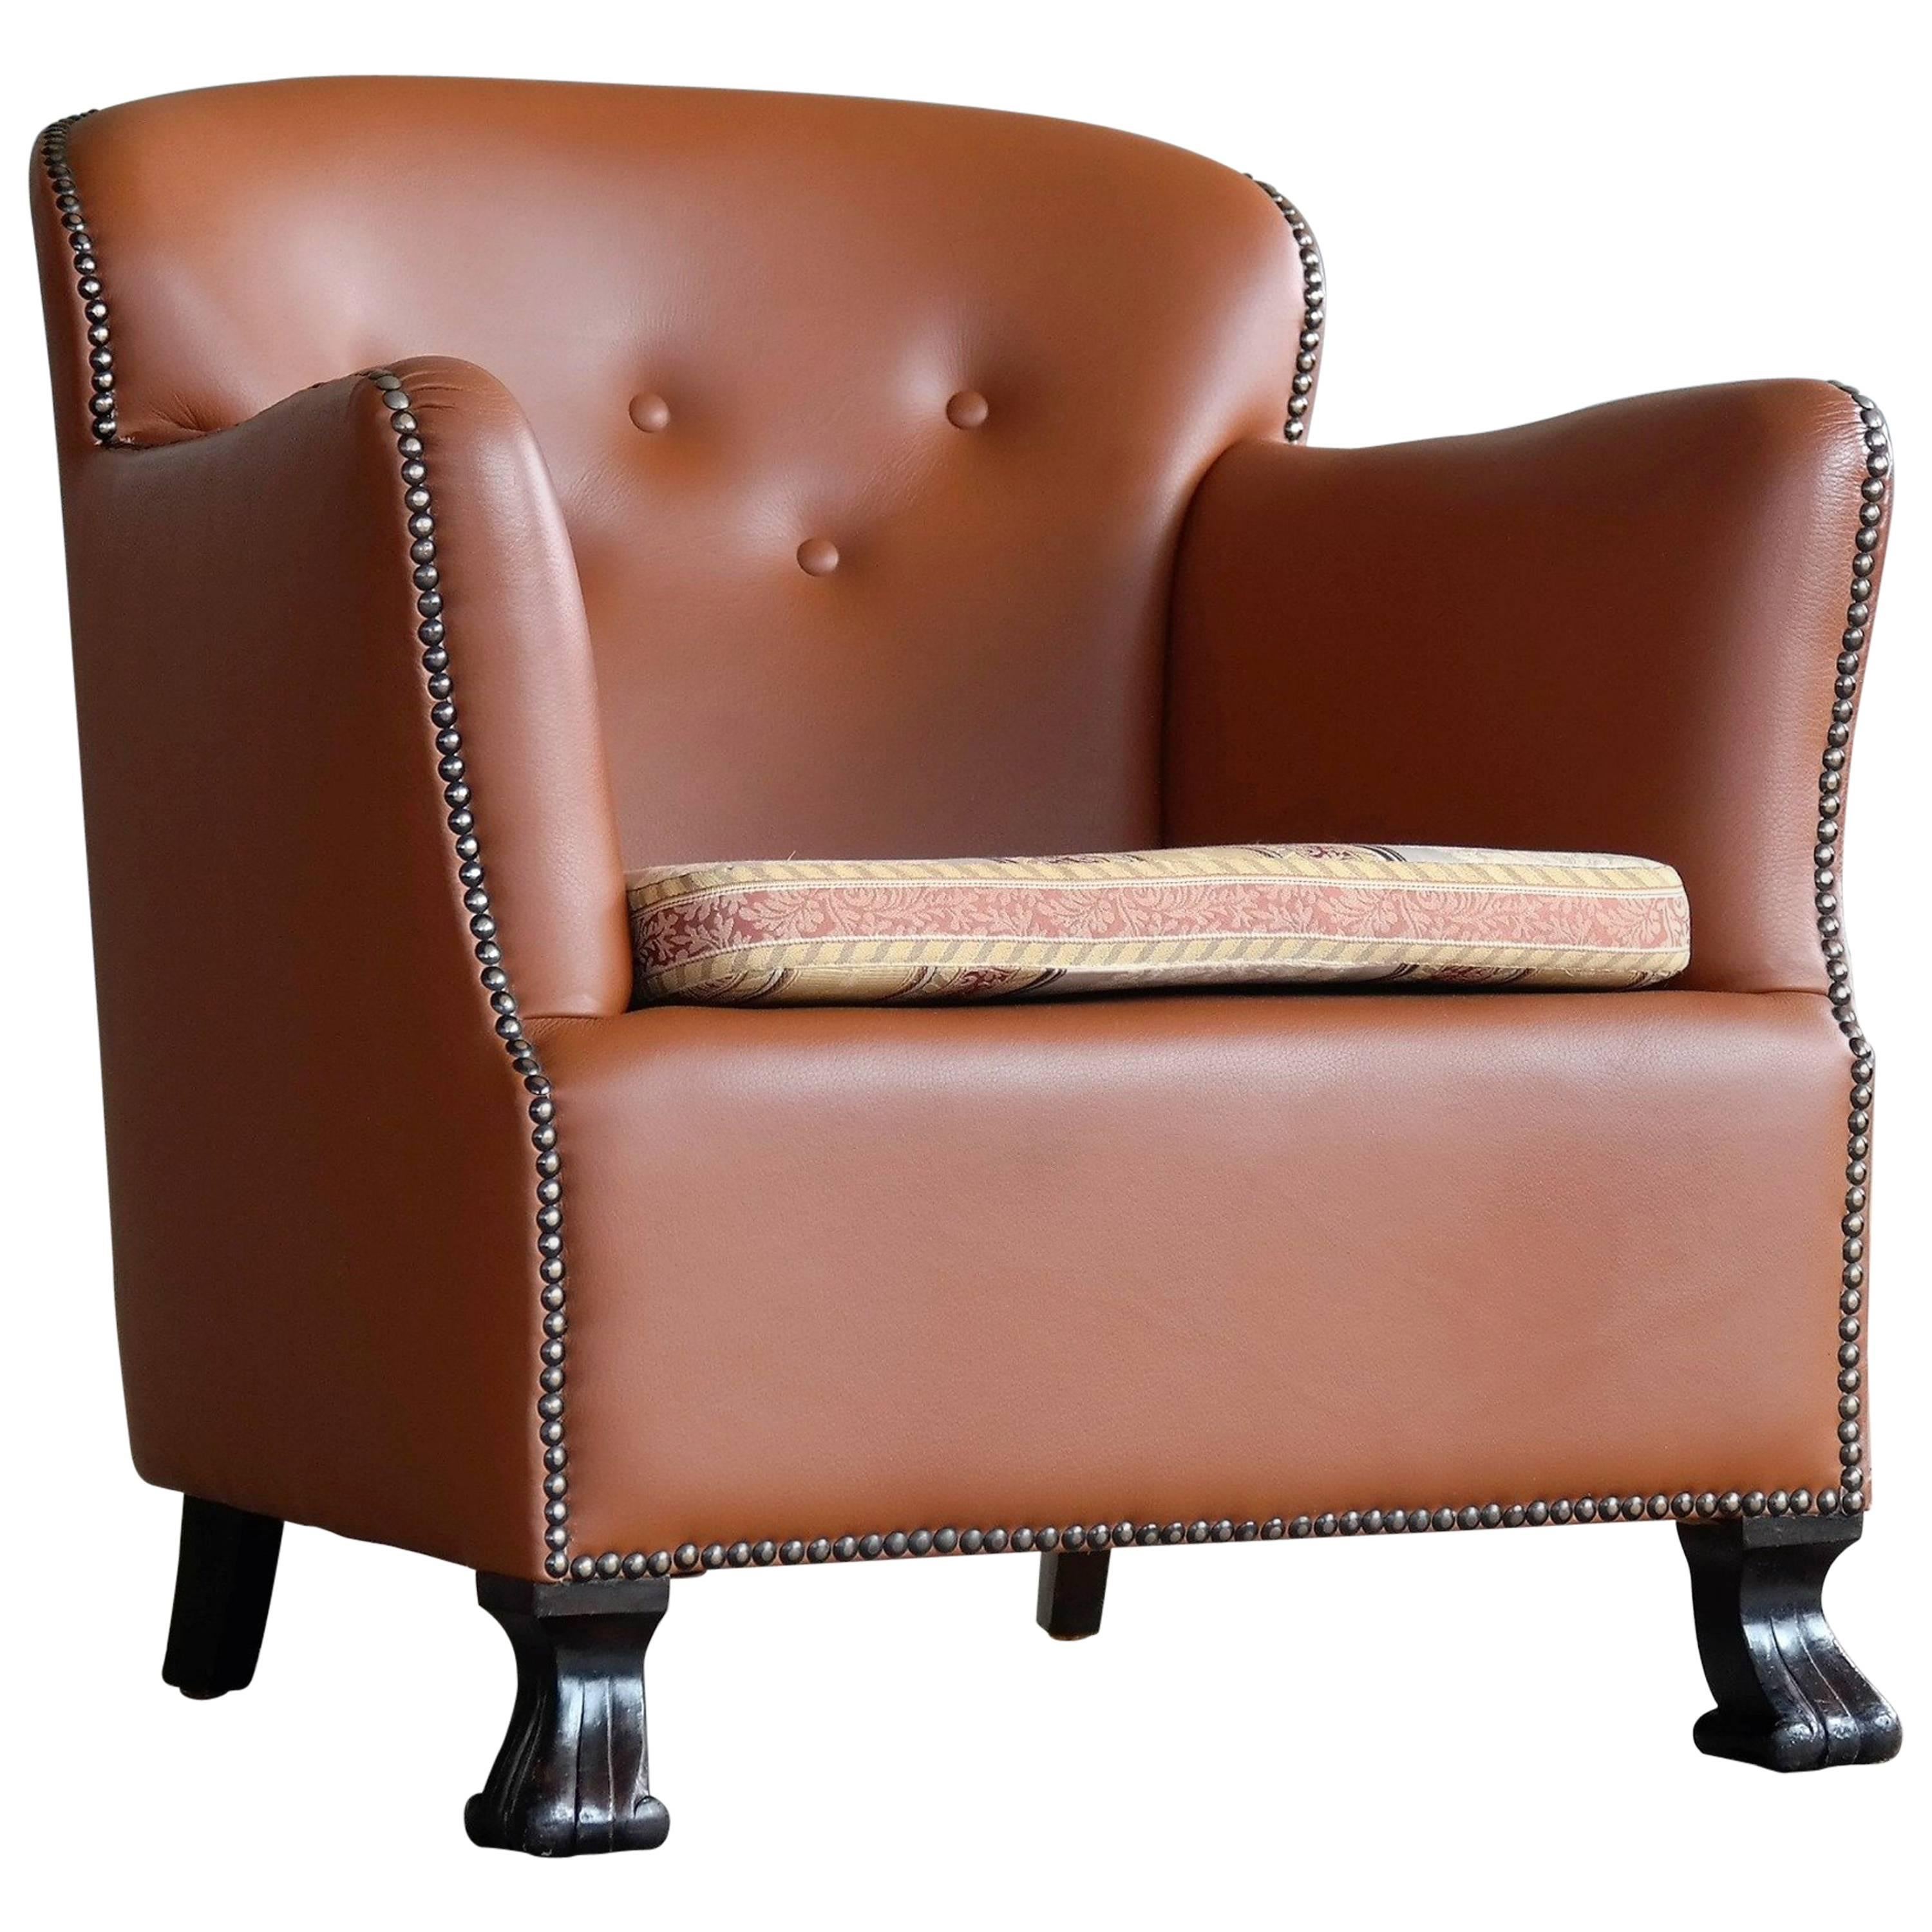 Danish, 1930s Half Size Club Chair In New Cognac Colored Leather And Brass  Tacks